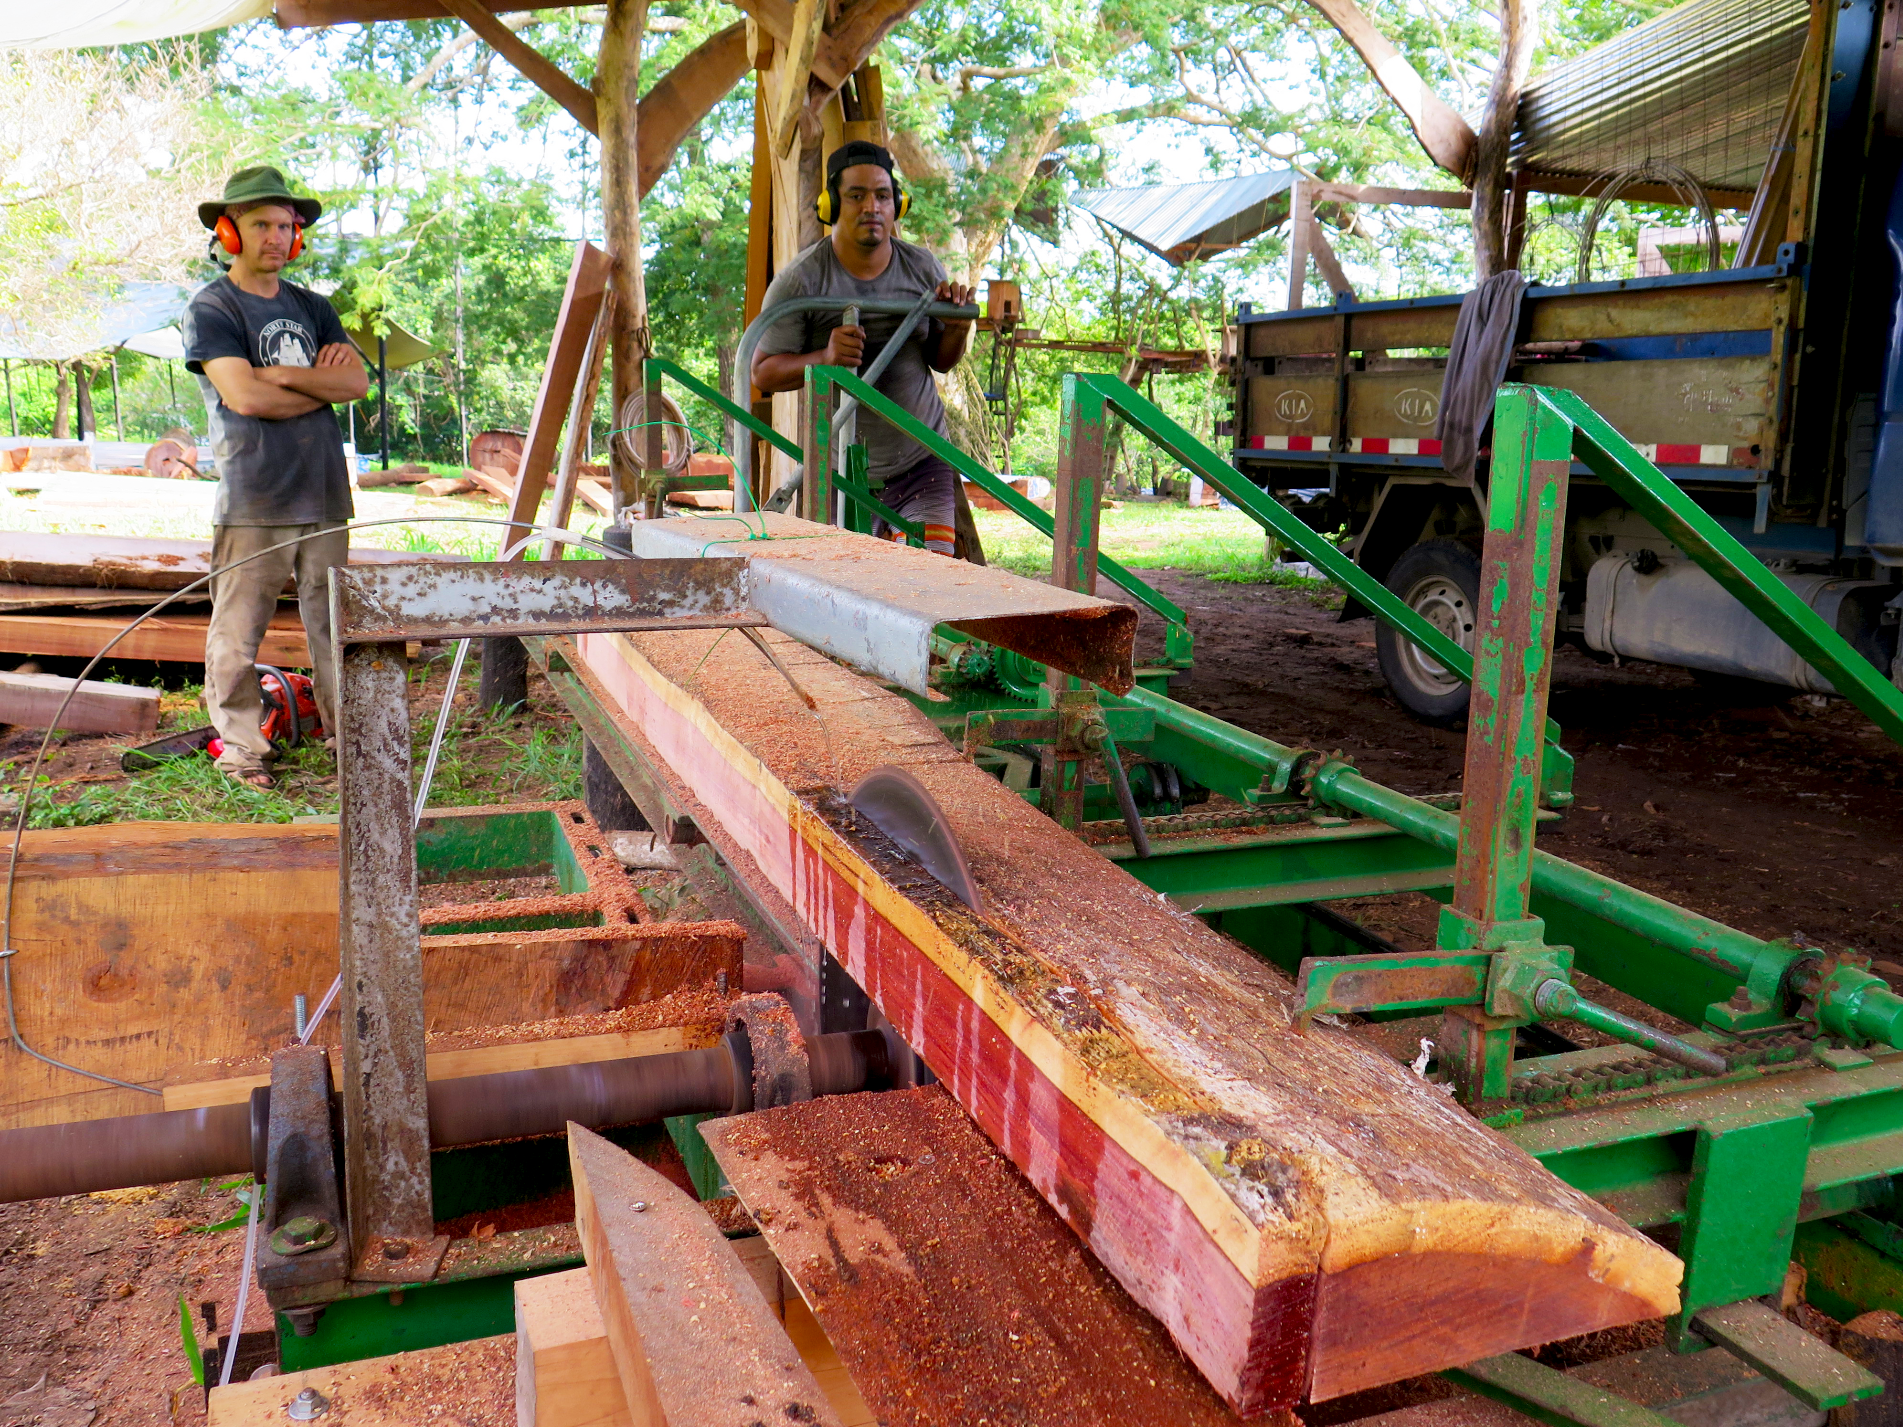 Lynx and Francisco work the fixed-blade sawmill, which is capable of ripping the densest hardwoods in the world. Shown on the sawmill is Tamarindo del Monte (Latin:  dialium guianese ), which was naturally wind-fallen by Hurricane Otto in Bijagua, Northern Costa Rica.  Photo: Danielle Doggett.